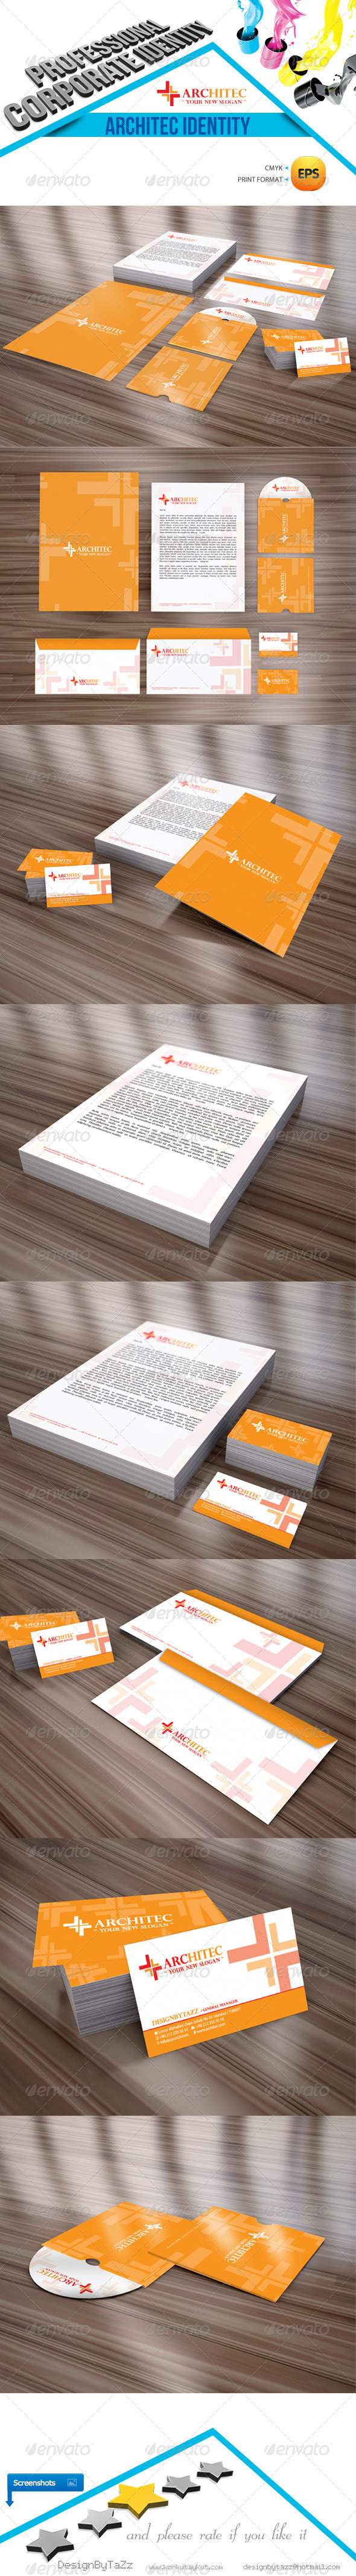 Architec Corporate Identity Package - Stationery Print Templates